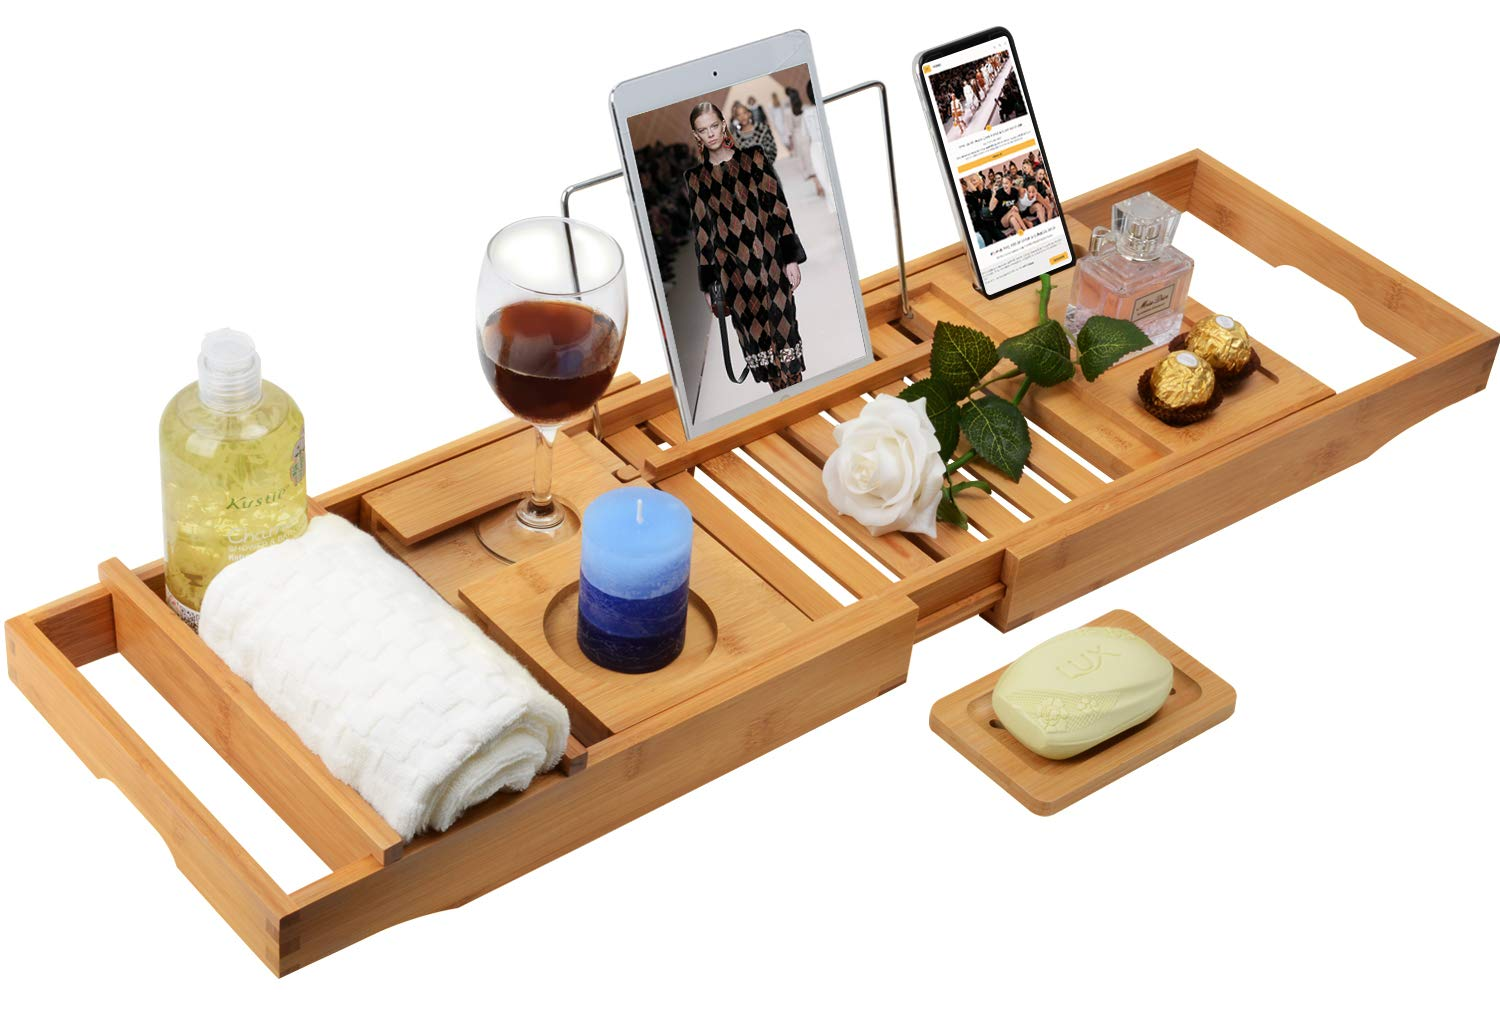 Domax Bathtub Caddy Tray with Wine Glass Holder Adjustable Book Stand Extendable Non Slip Sides Bamboo Bath Organizer